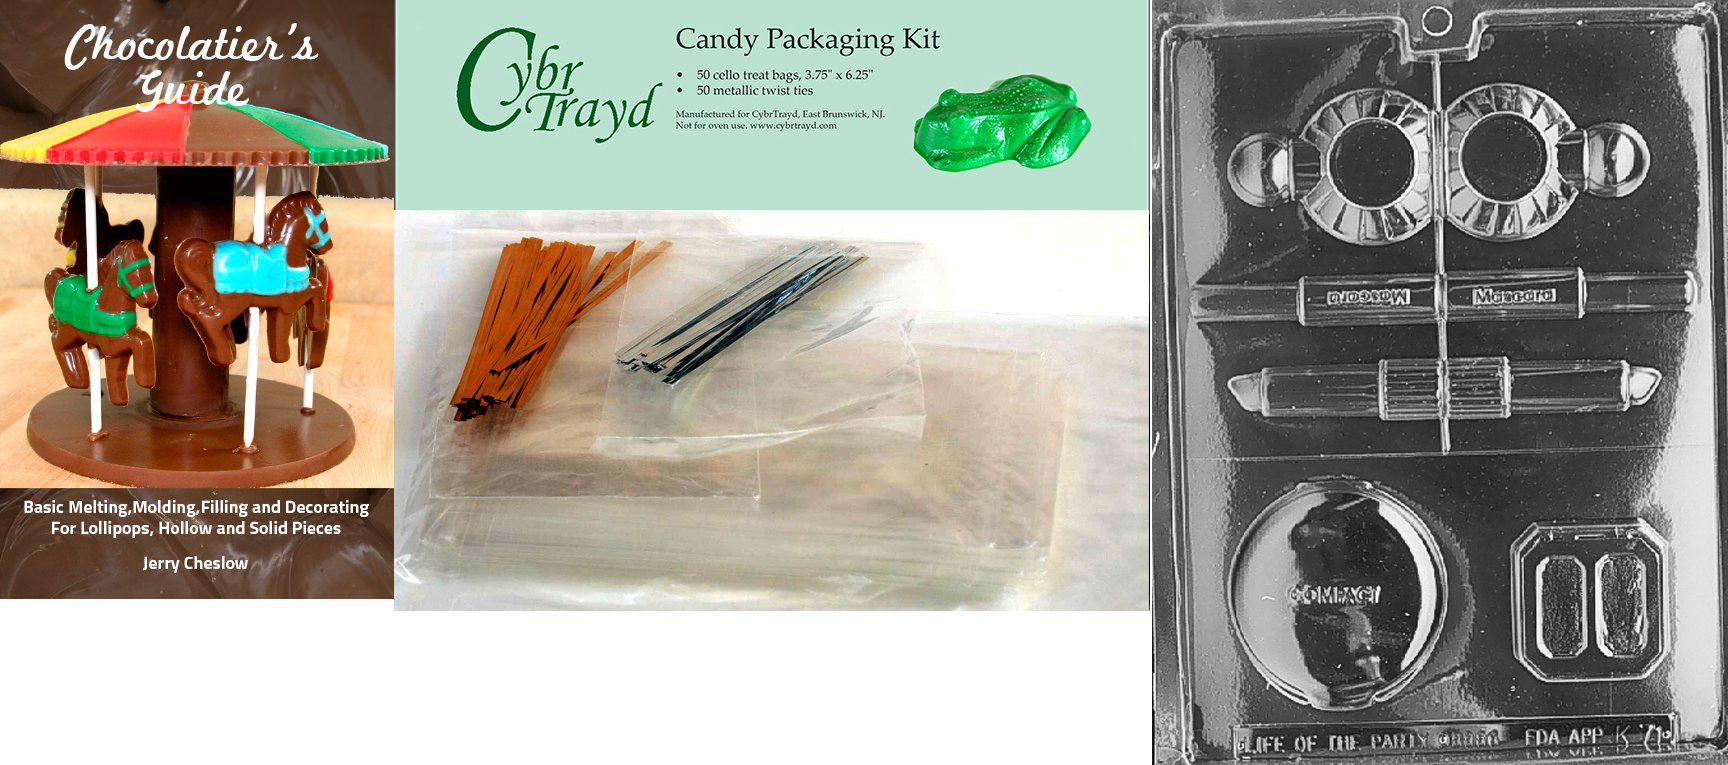 Cybrtrayd 'Makeup Kit Kids' Chocolate Candy Mold with Chocolatier's Bundle of 50 Cello Bags, 25 Gold and 25 Silver Twist Ties and Chocolate Molding Instructions